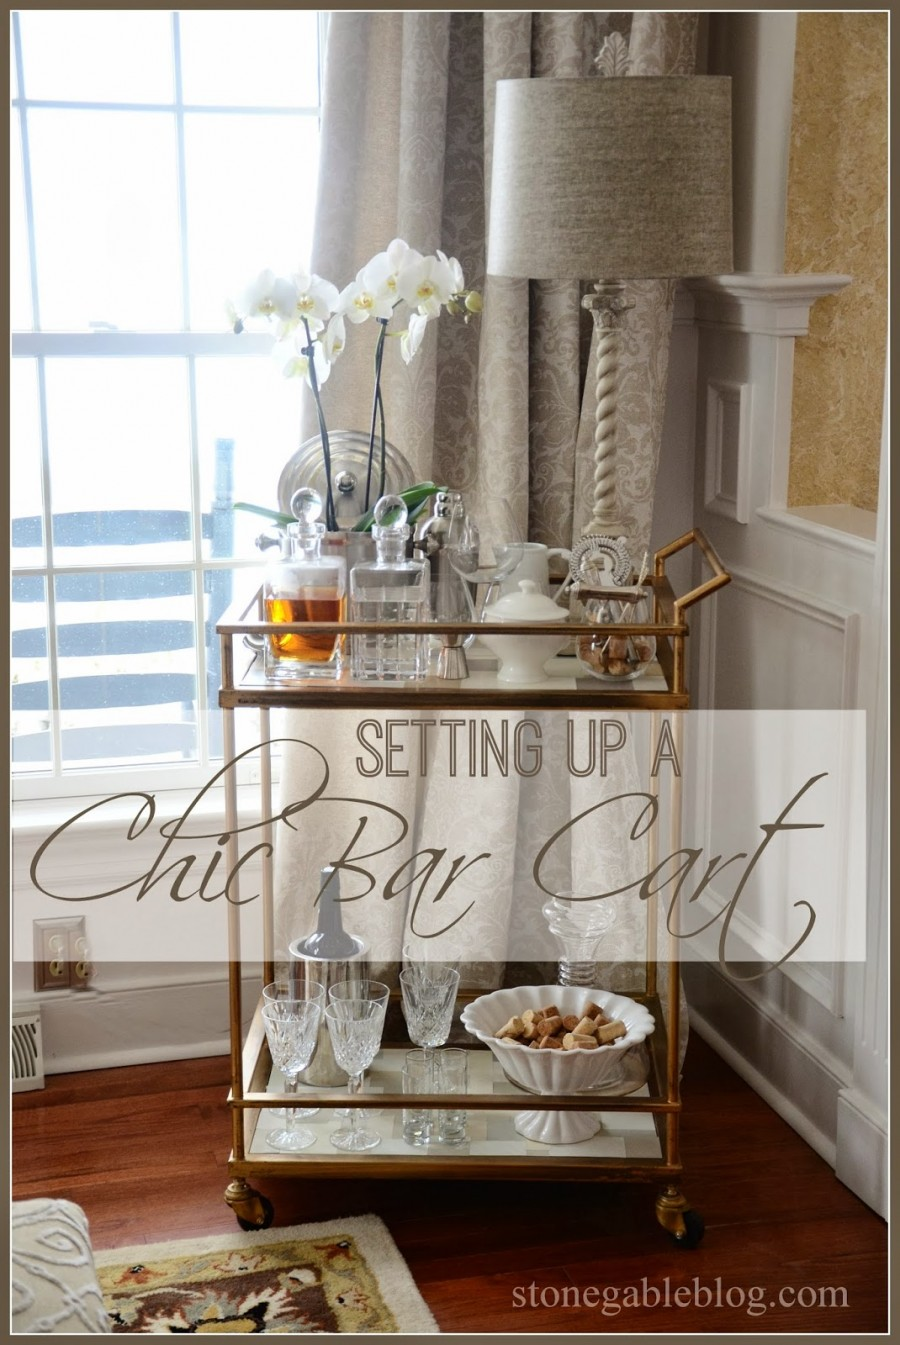 SETTING UP A CHIC BAR CART